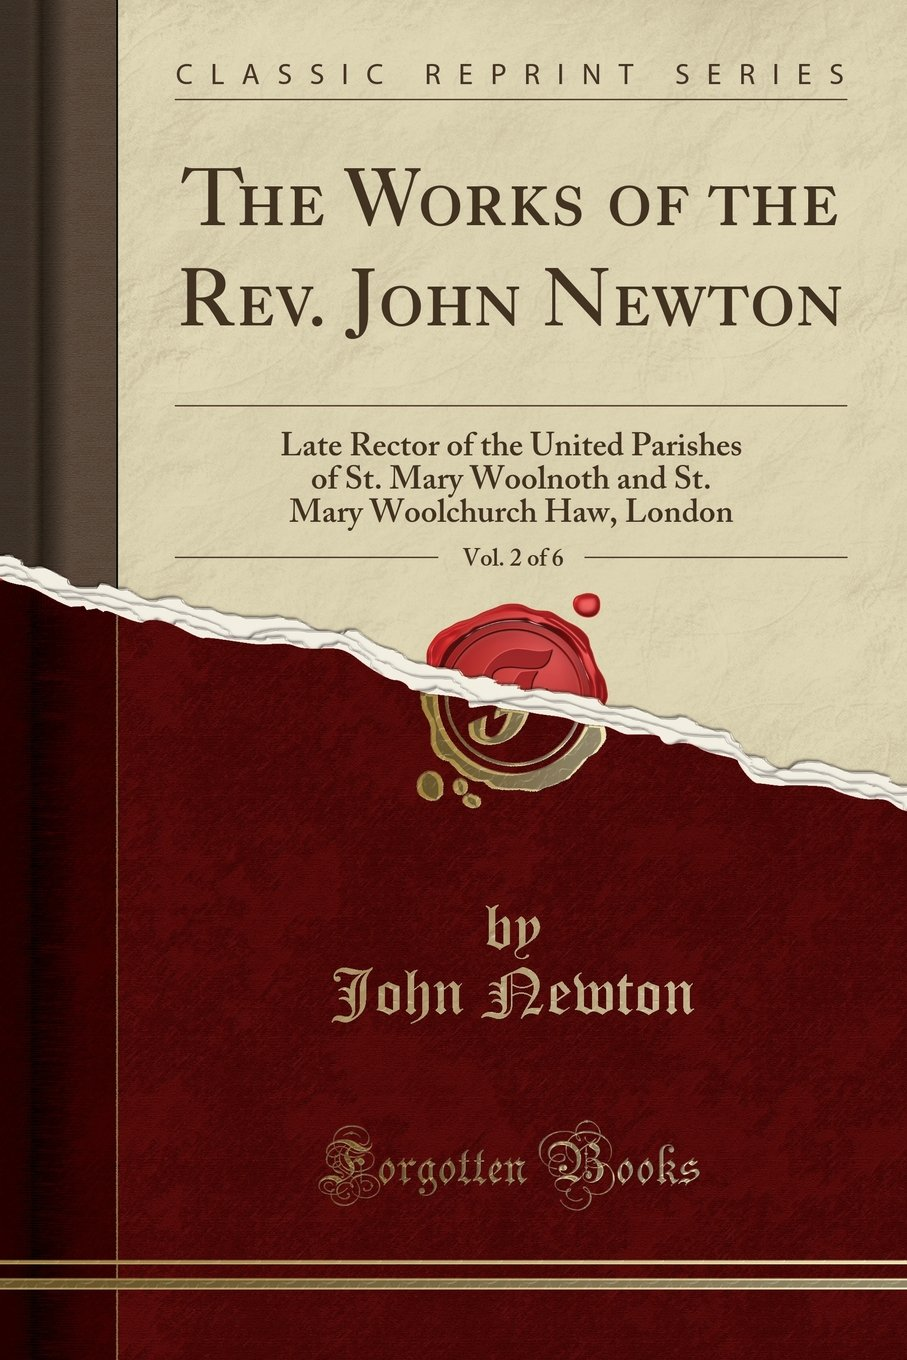 Download The Works of the Rev. John Newton, Vol. 2 of 6: Late Rector of the United Parishes of St. Mary Woolnoth and St. Mary Woolchurch Haw, London (Classic Reprint) pdf